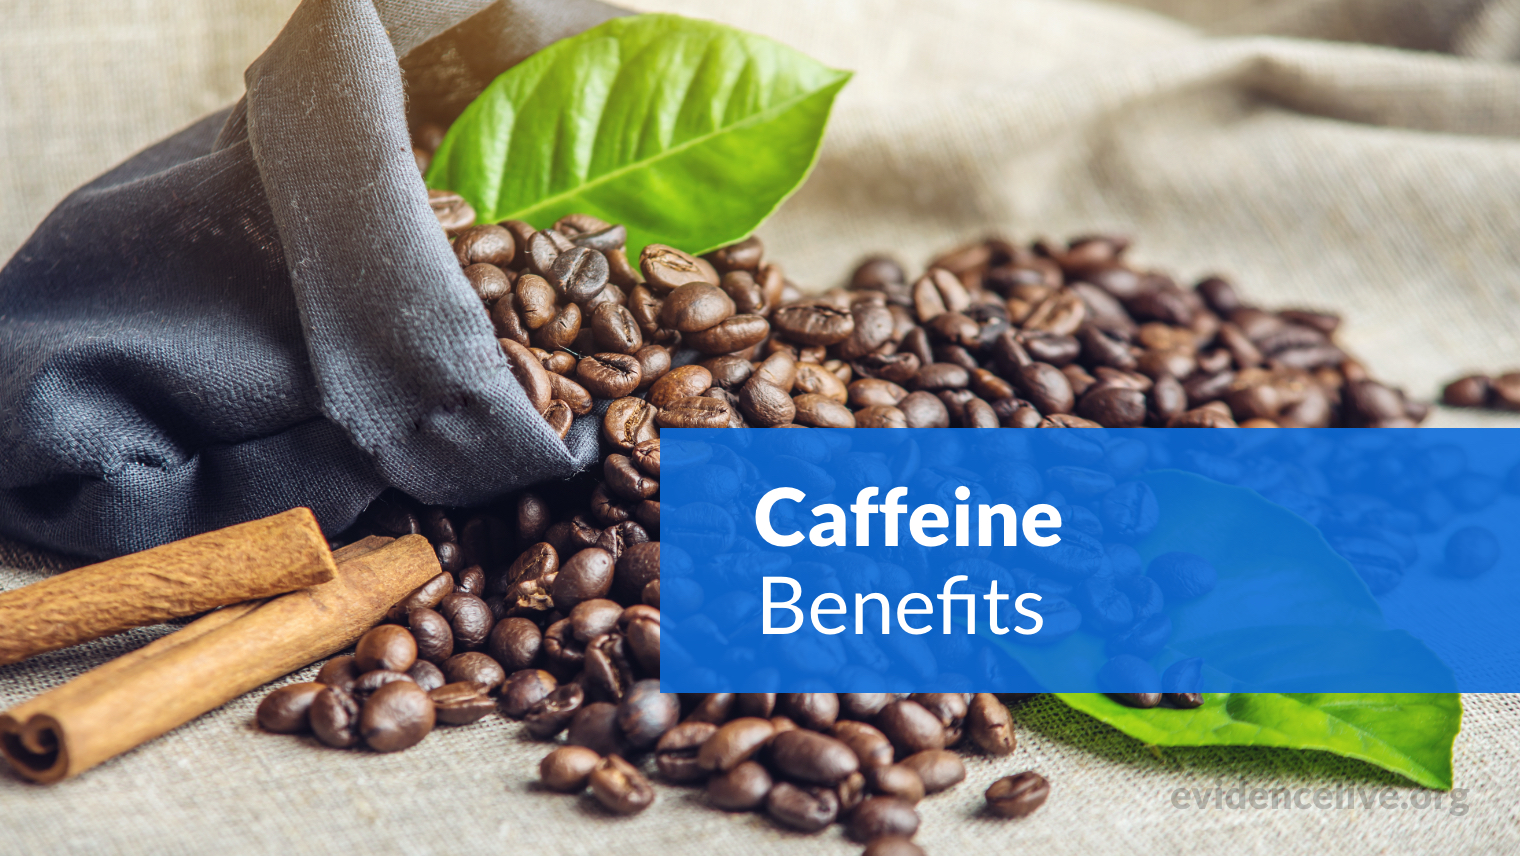 Is Caffeine Good For You? How Does It Benefit Your Brain?